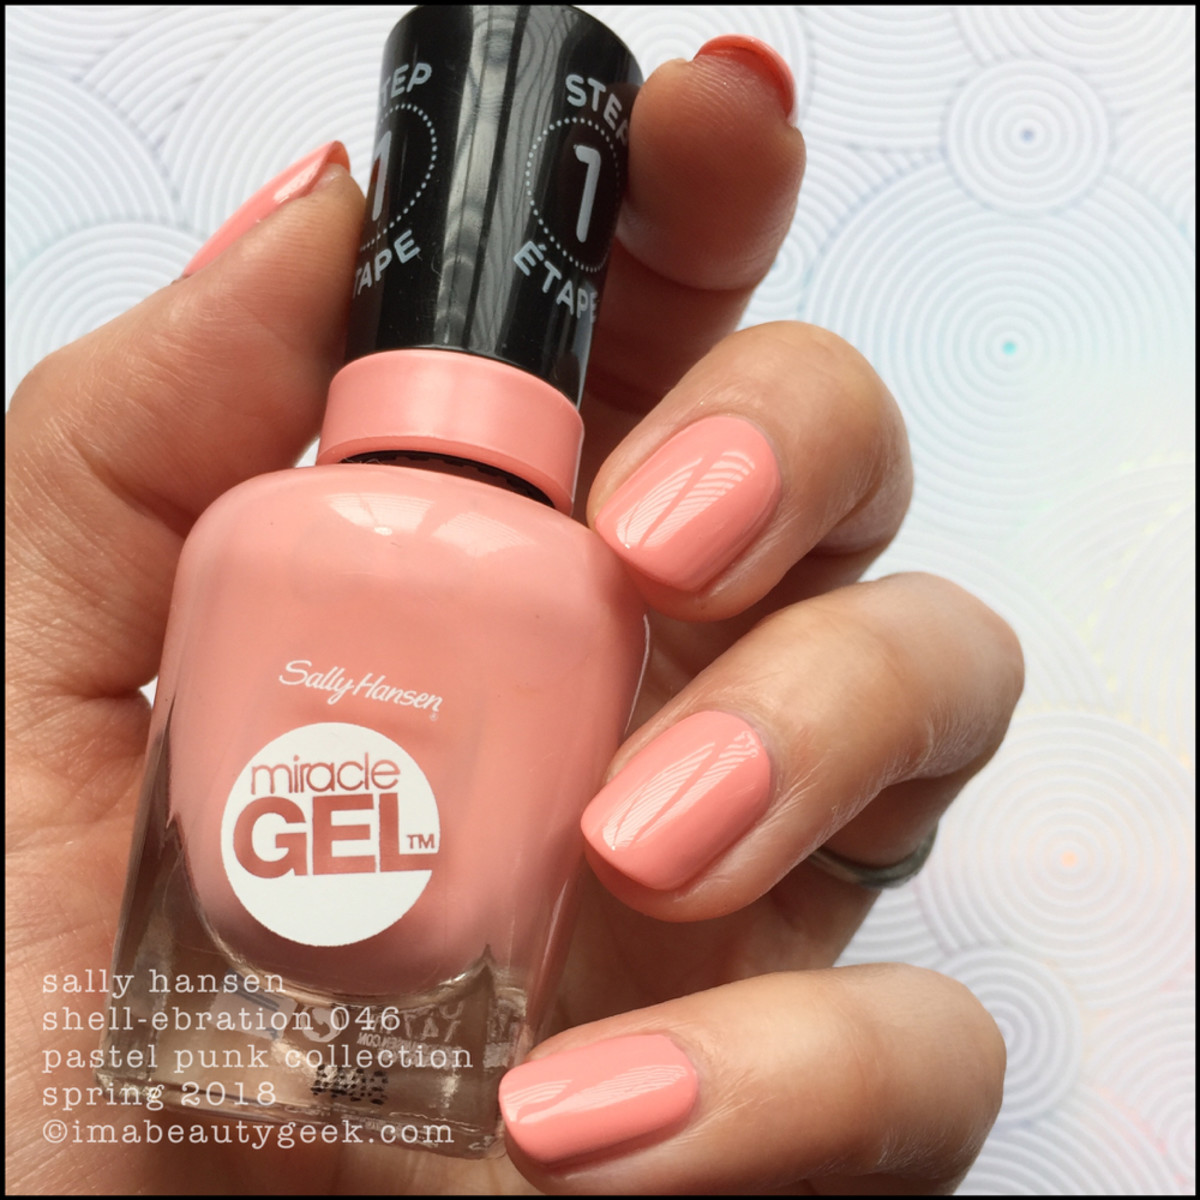 Sally Hansen Shell-ebration 046 Miracle Gel 2018